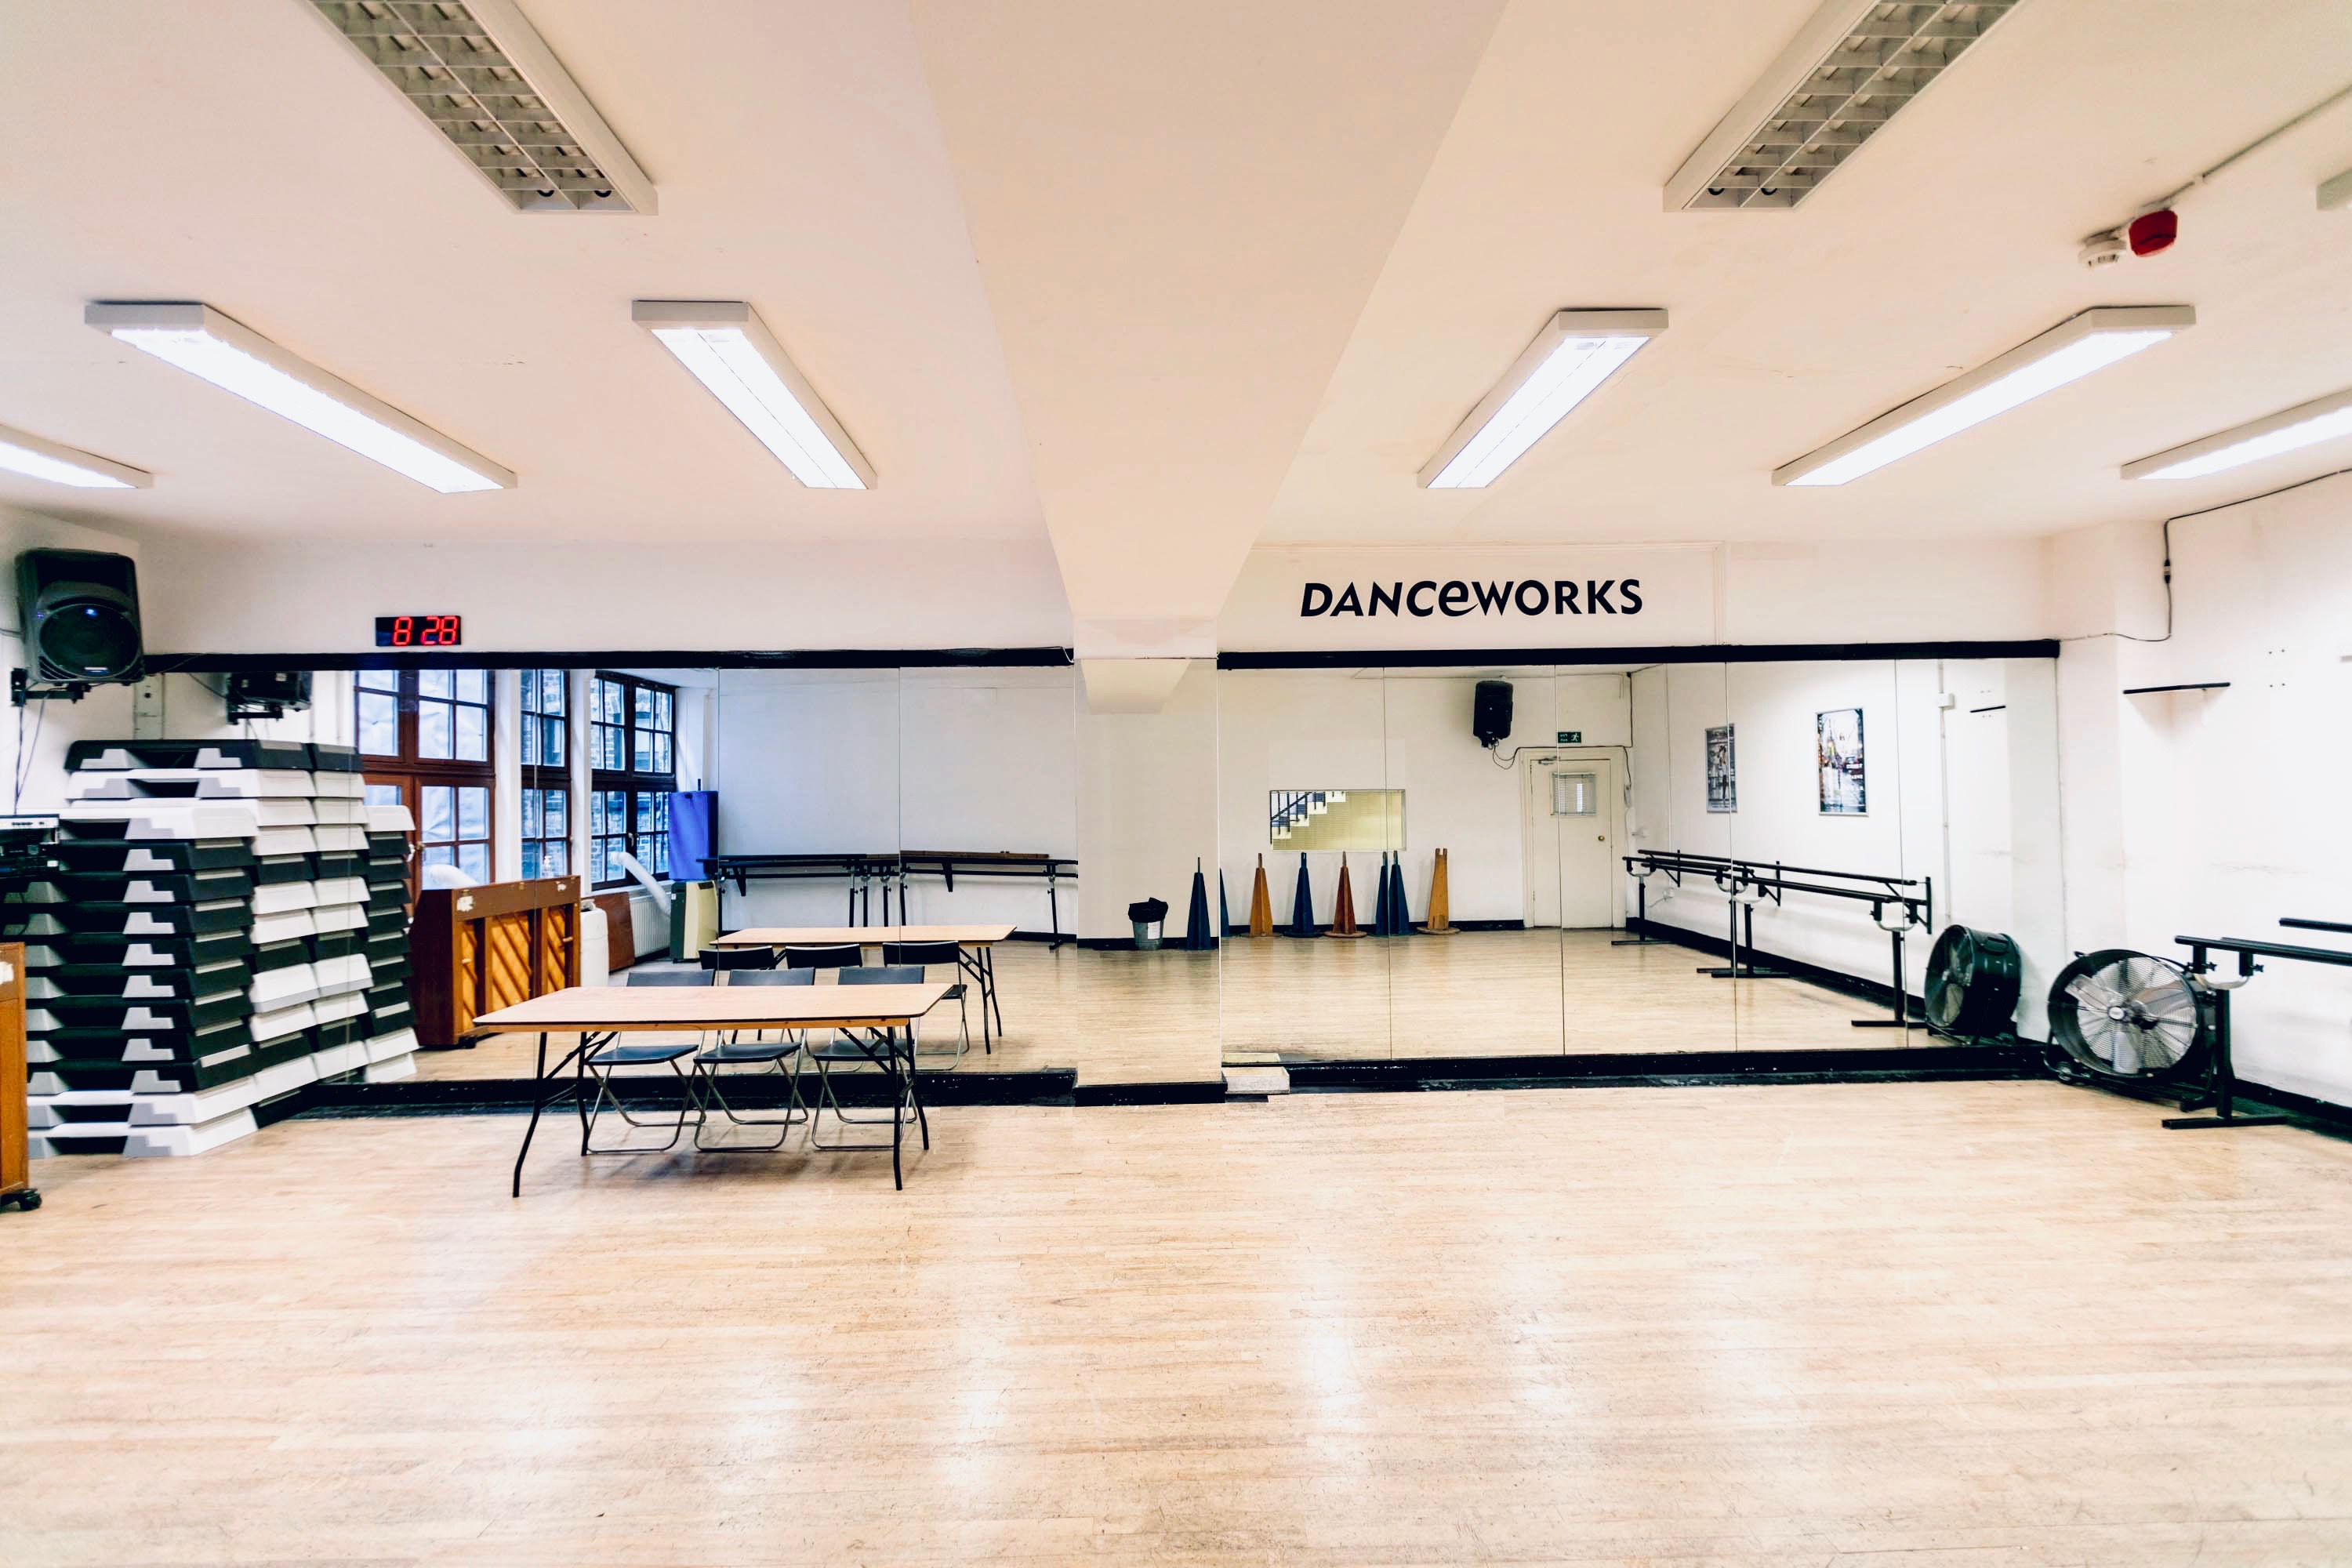 Studio 5 to hire at Danceworks London